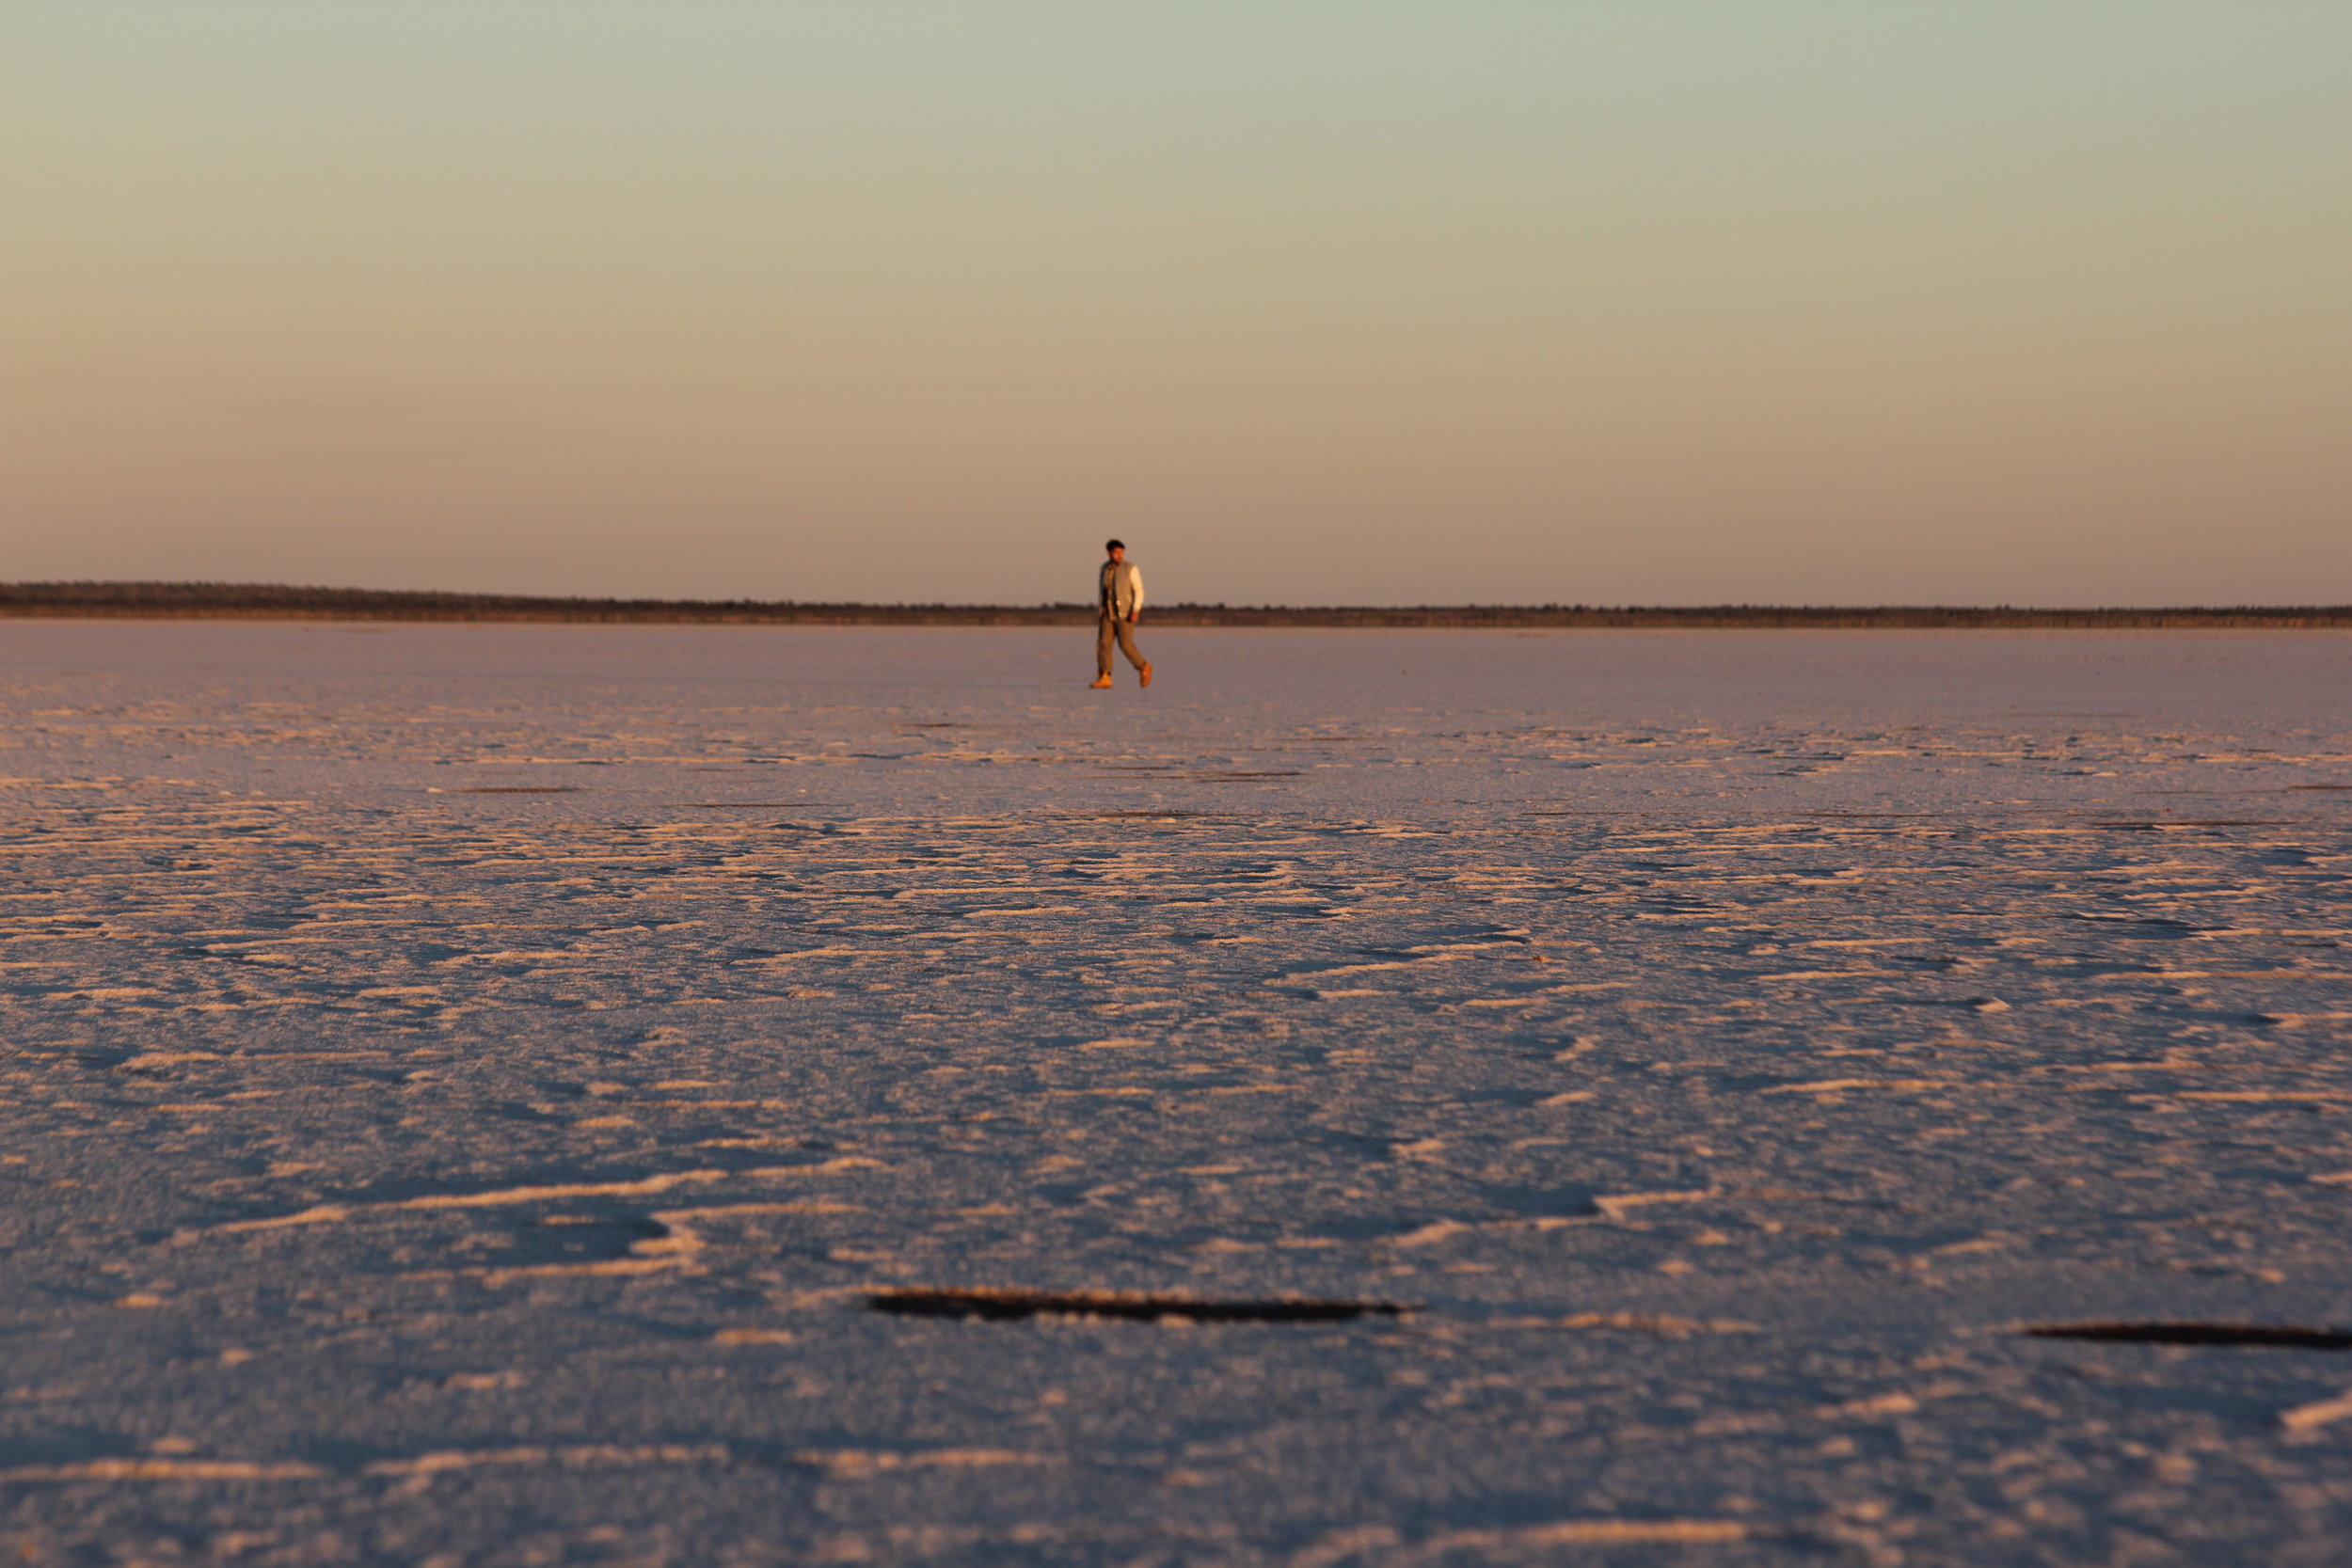 Lake Mackay, a huge salt lake in the heart of the Outback that is sacred to the Aboriginals.